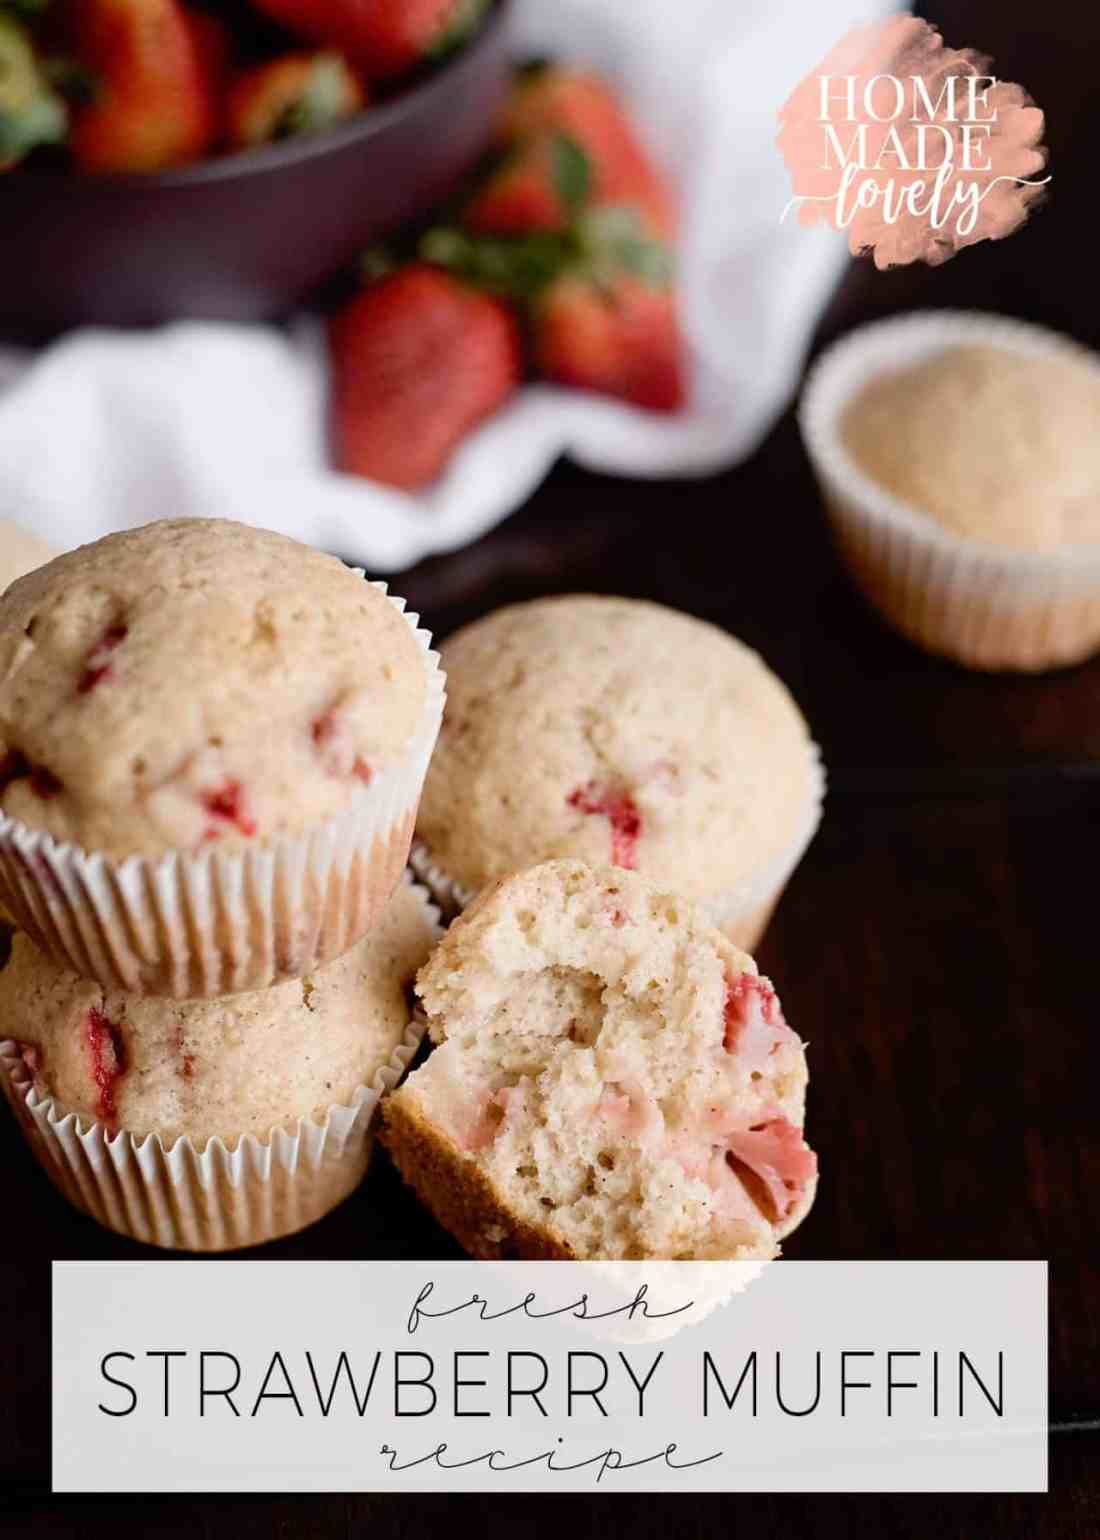 There's nothing quite like fresh, homemade baked goods. And this fresh strawberry muffin recipe is perfect for National Strawberry Month (which is May) or anytime!